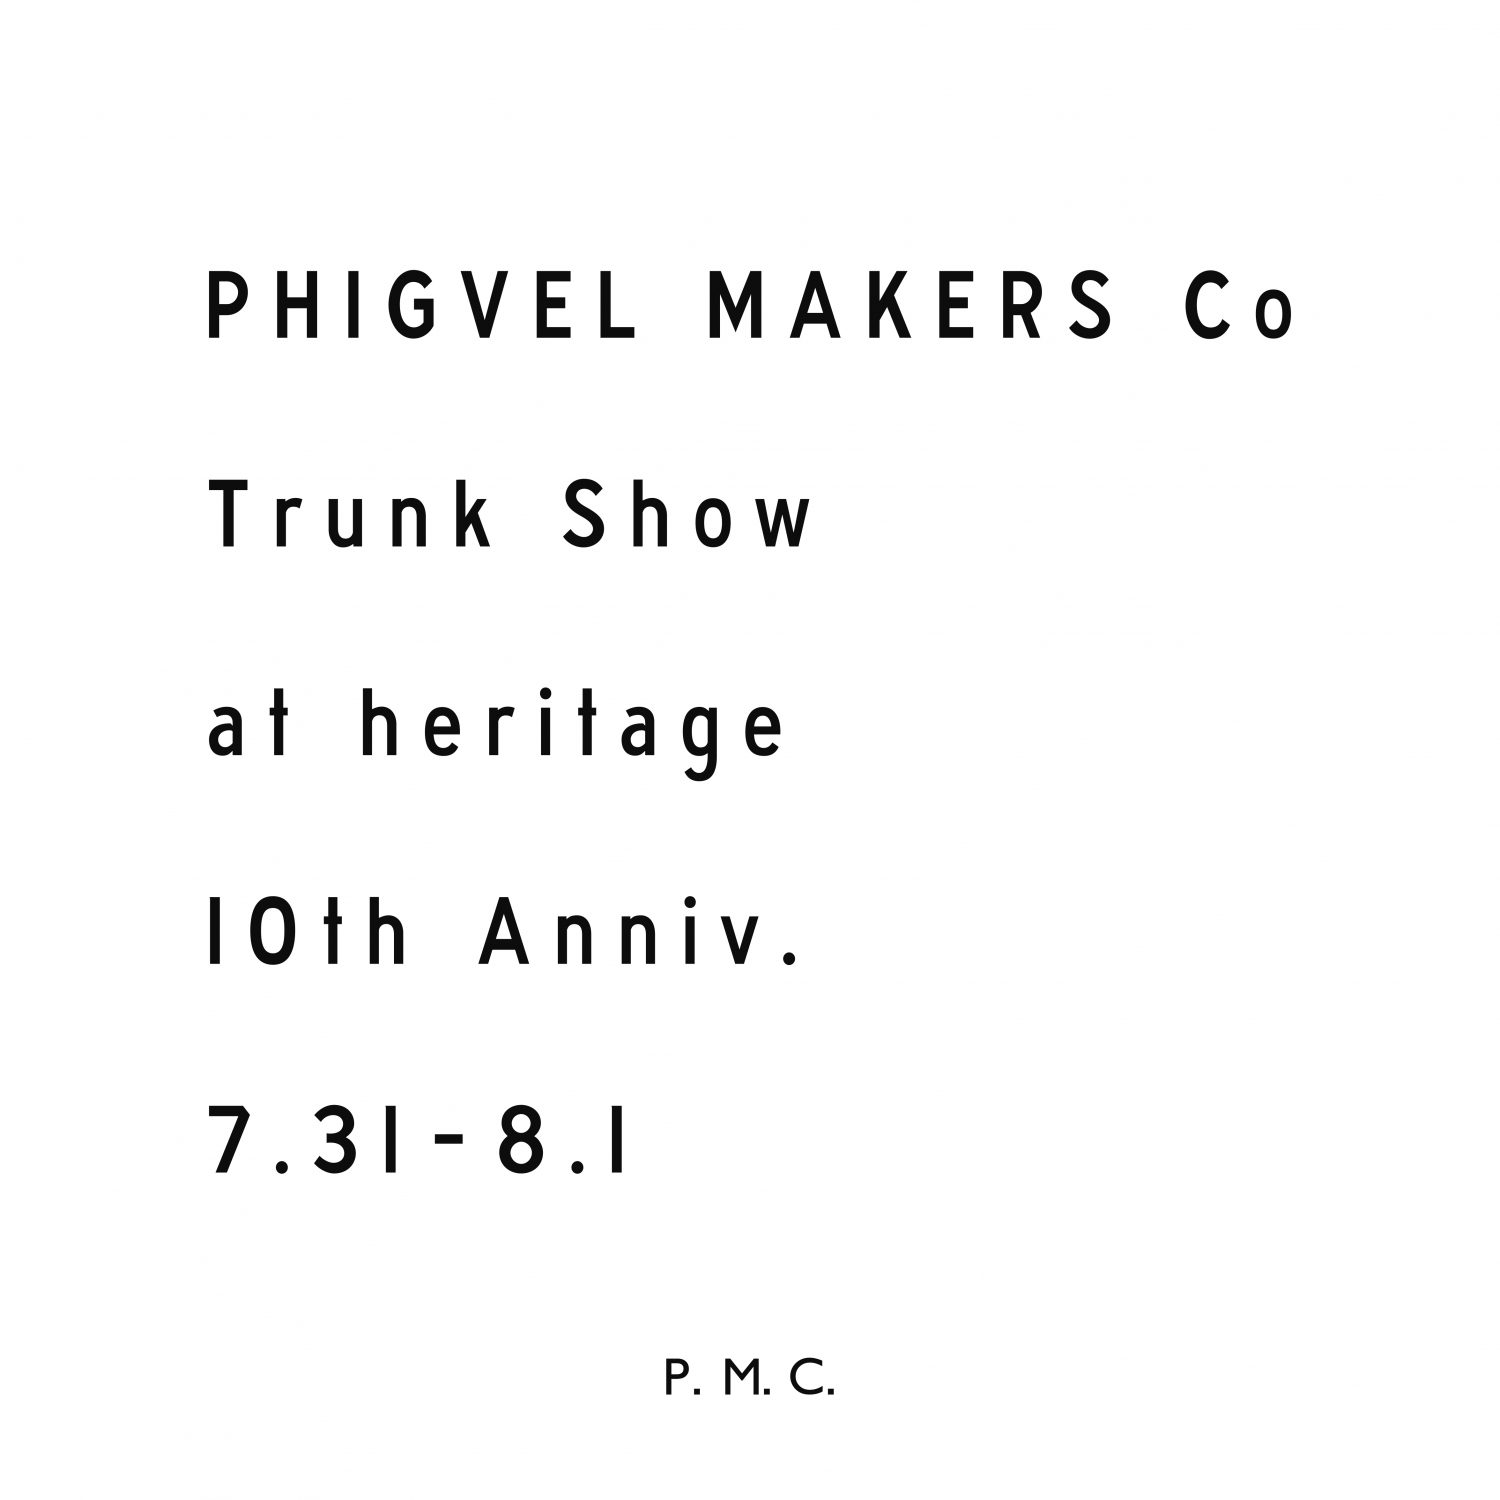 PHIGVEL Trunk Show at heritage 10th Anniv.